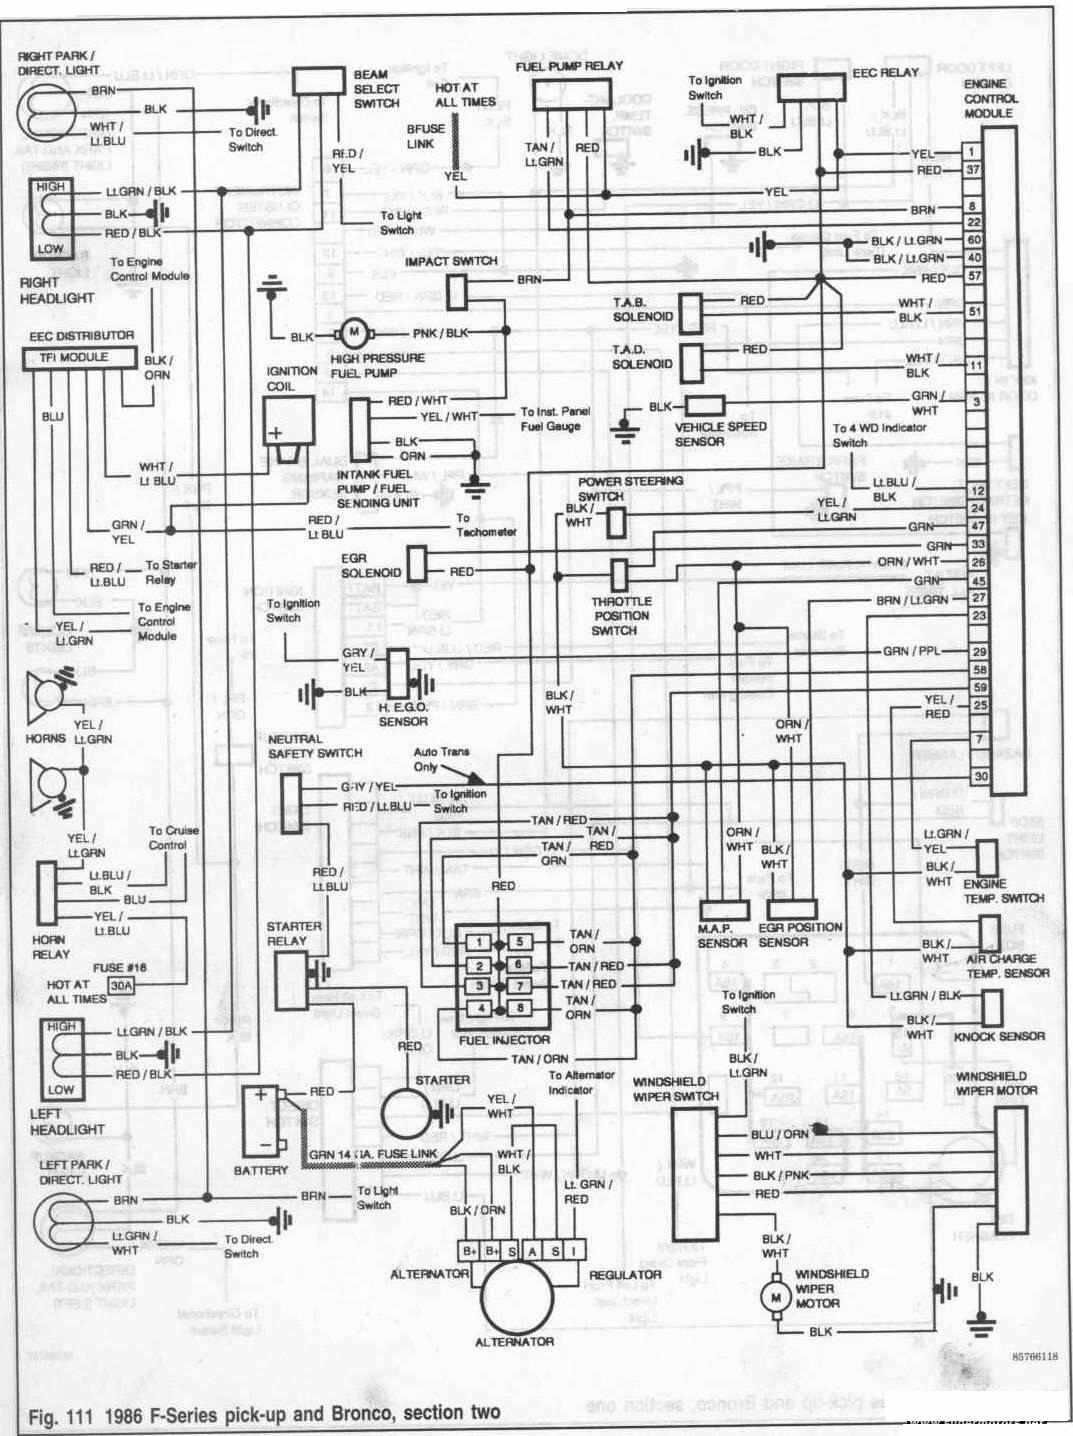 Steering Column Wiring Diagram For 1972 F250 besides Fuse Pigtail Plug Connector Wiring Vw Jetta Golf Mk4 Beetle besides 97 Ford F 250 5 8 Engine Diagram additionally 1977 Bronco Wiring Diagram besides 79 Trans Am Fuse Box. on 79 ford bronco alternator wiring